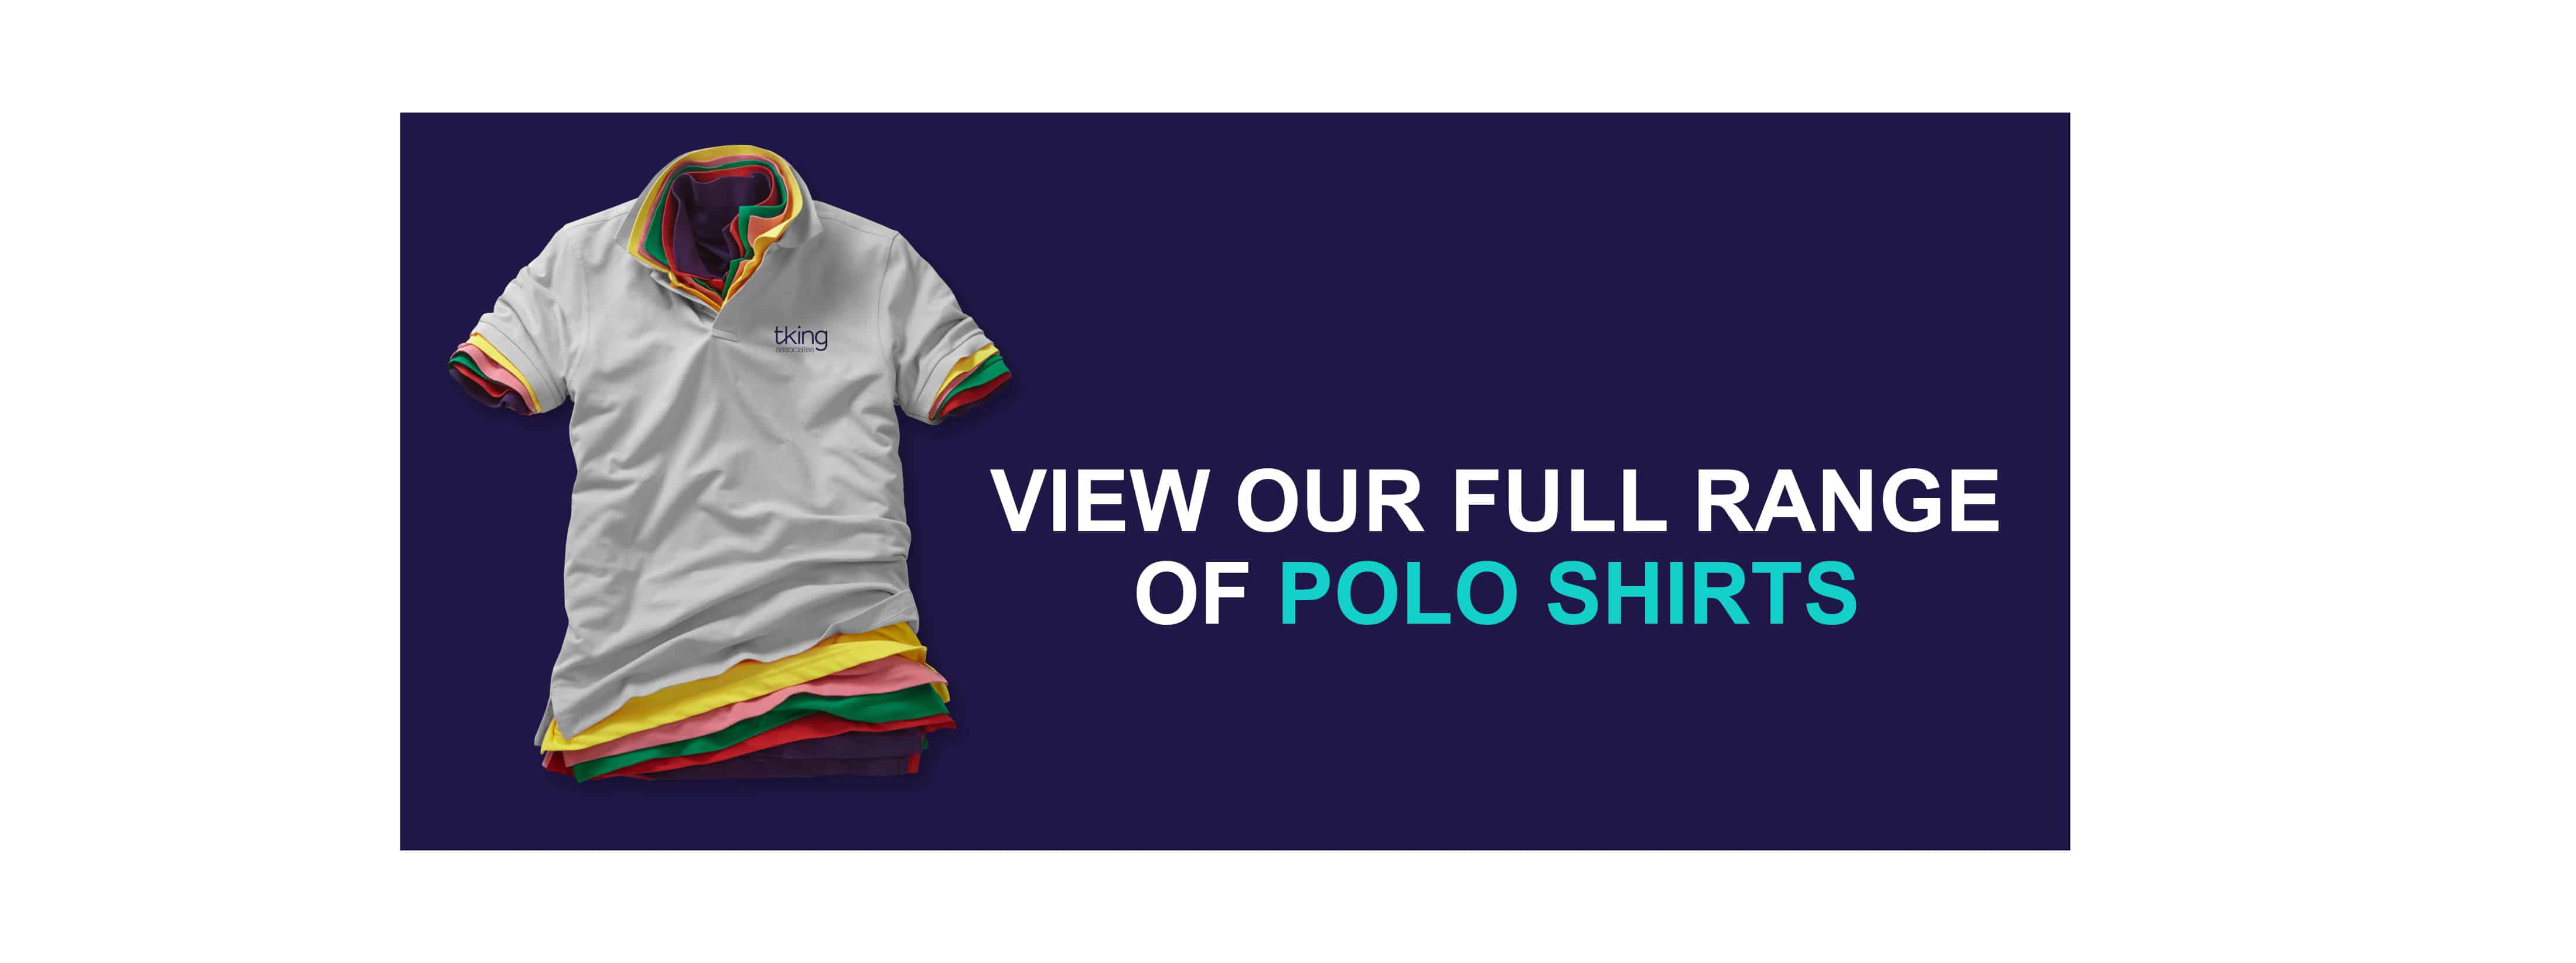 View Our Full Range of Polo Shirts